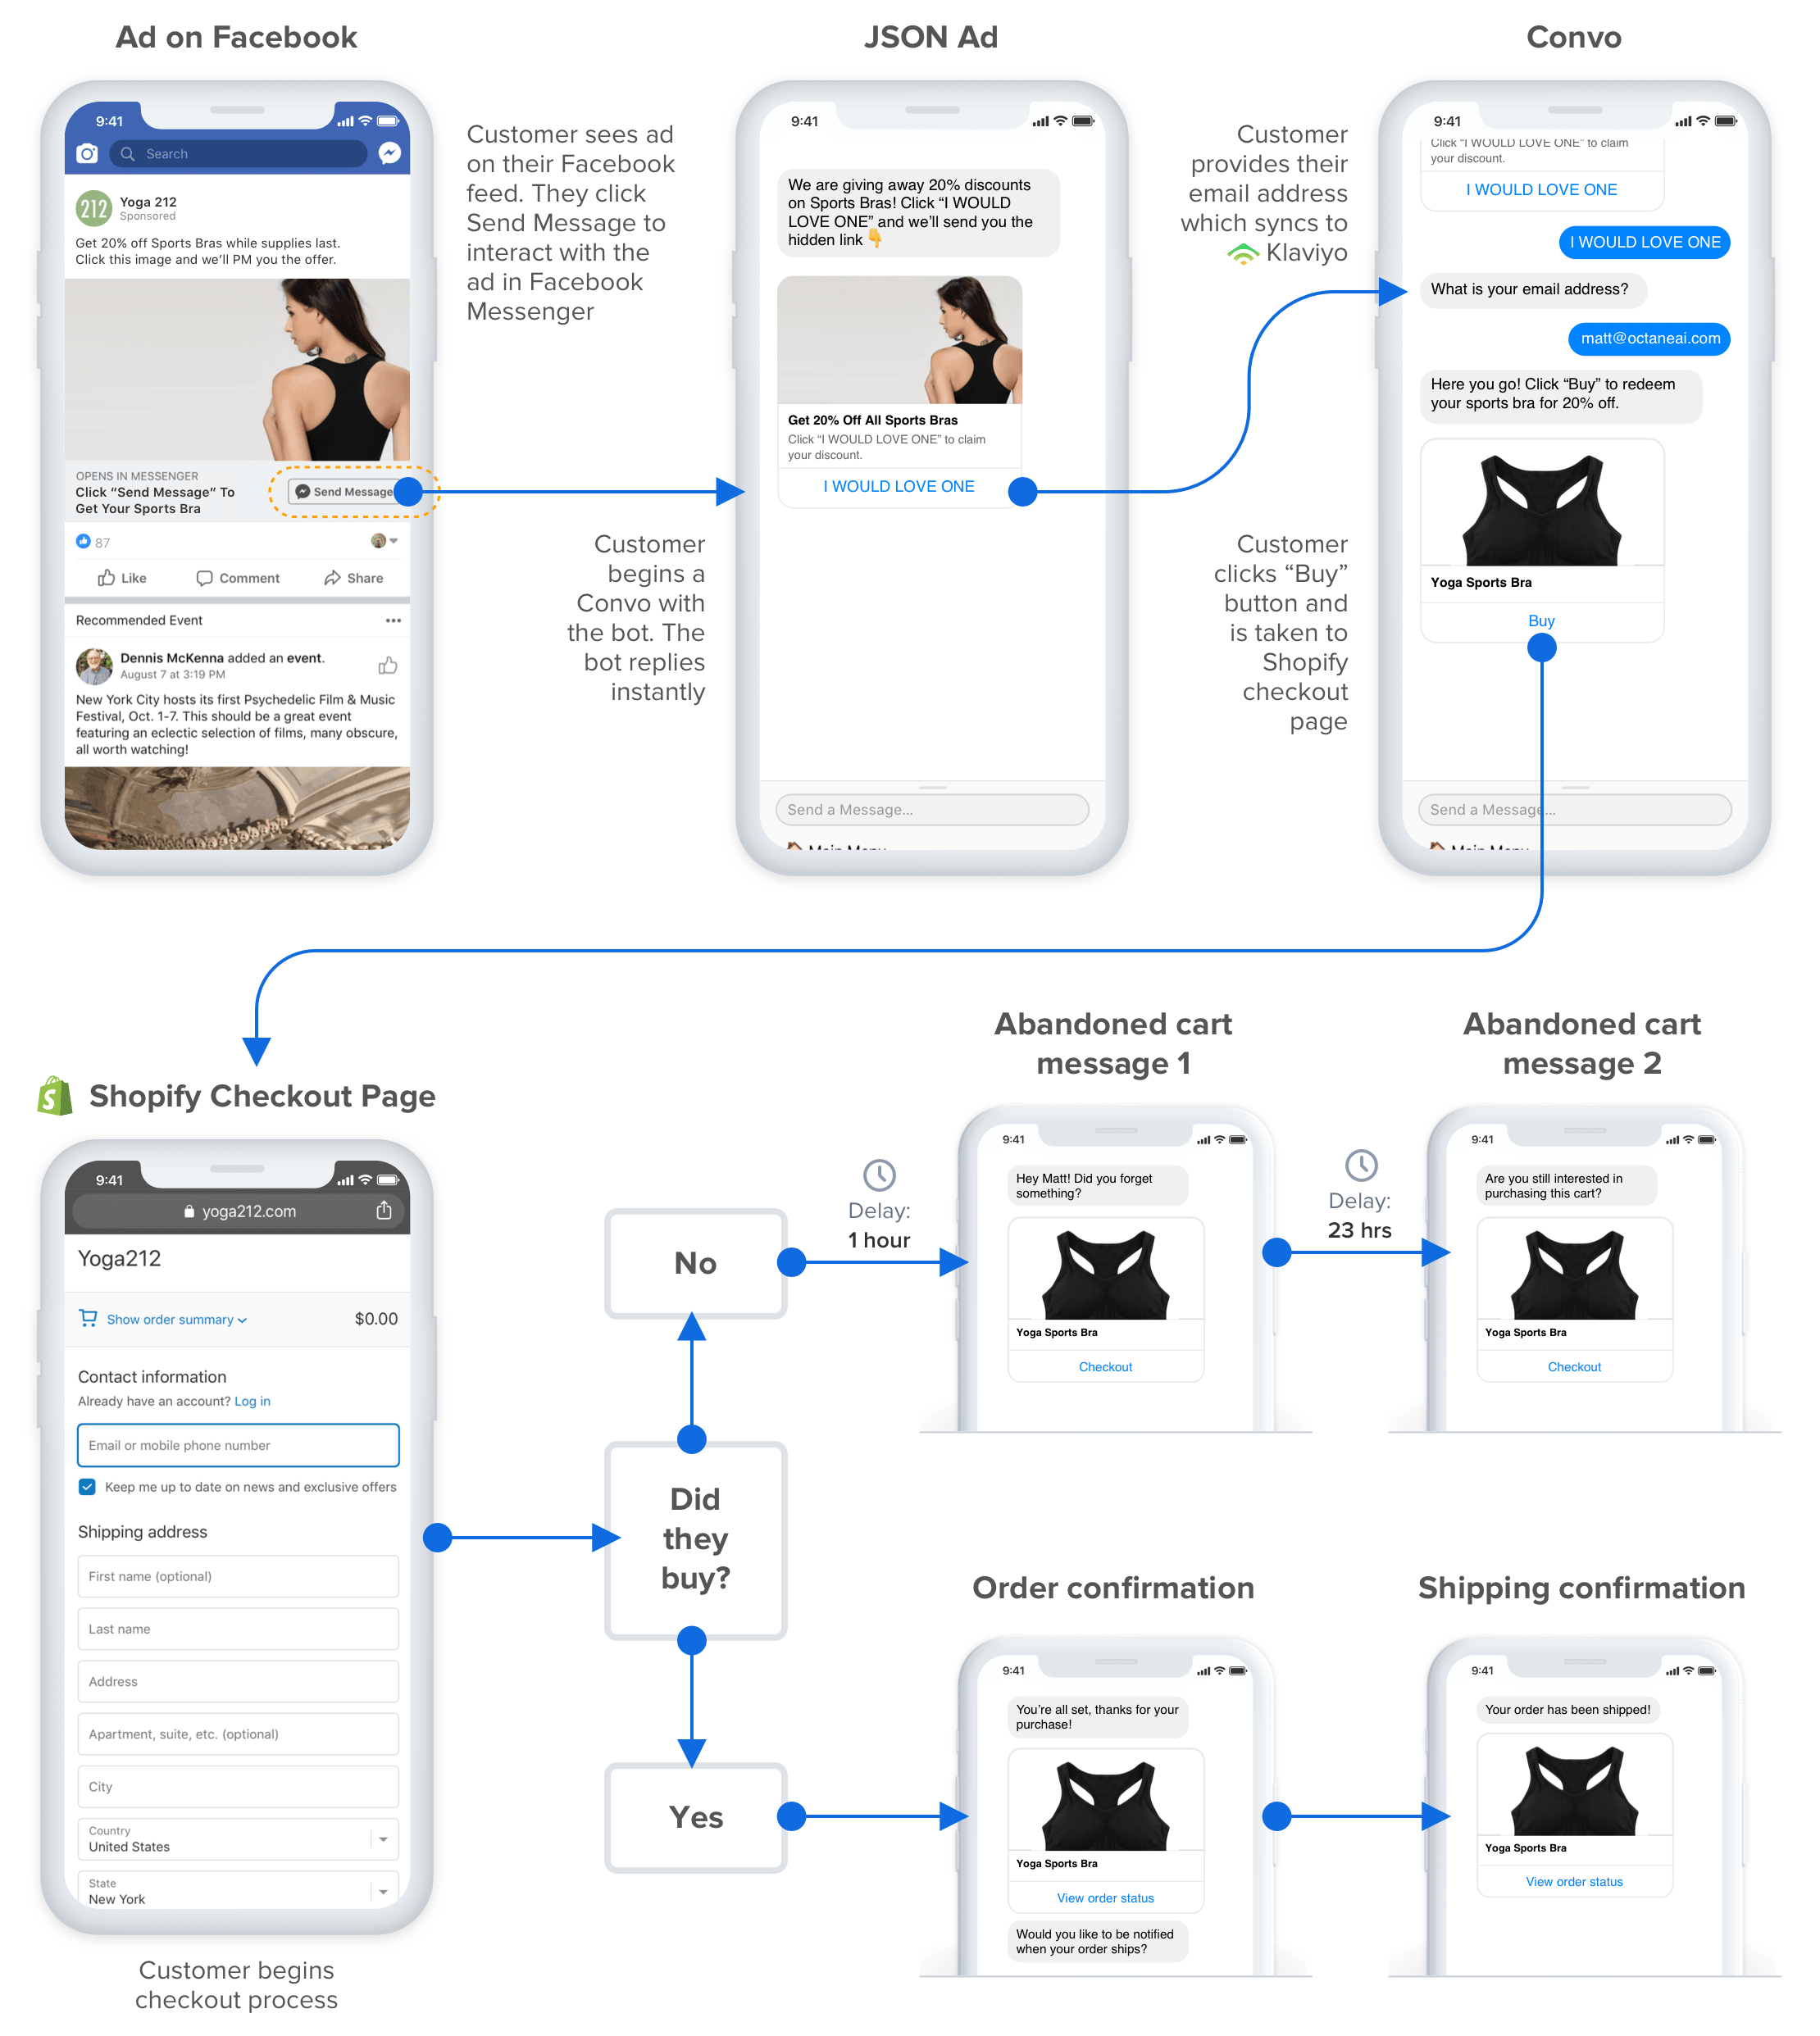 click-to-messenger facebook ad example flow